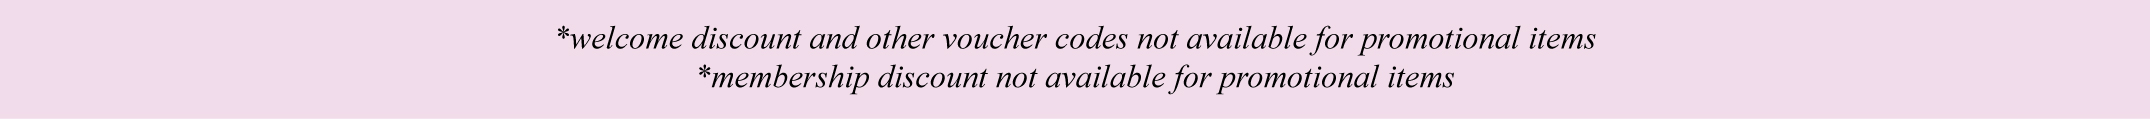 voucher code not allowed - footer (website) 2.jpg